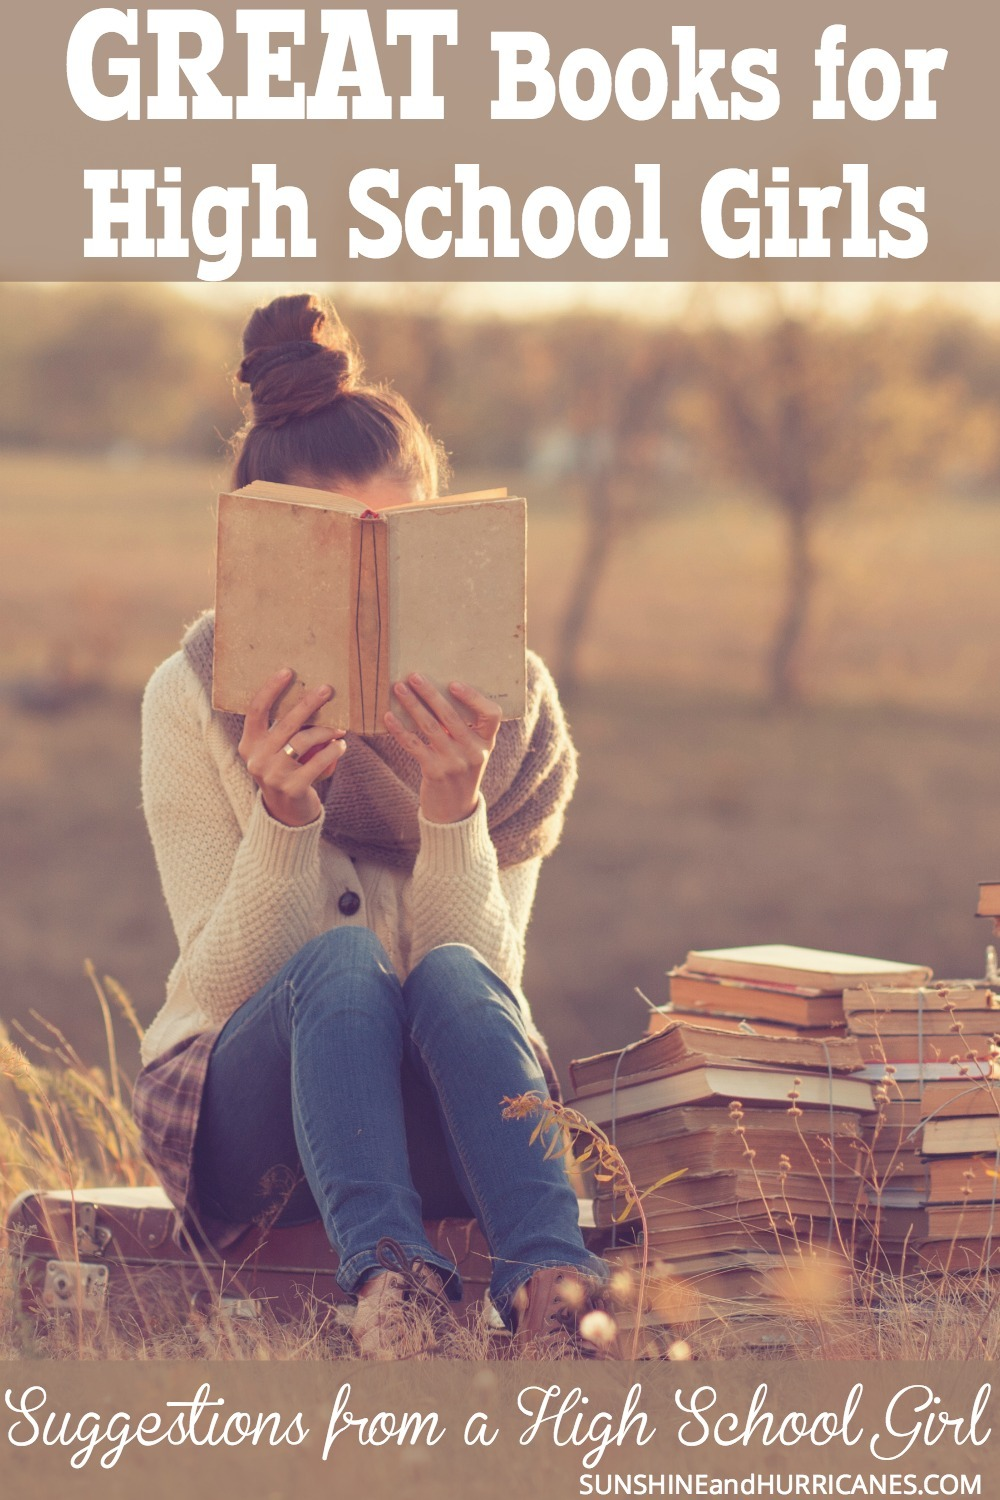 Are you tired of your daughter reading trashy books? We all know there is a time and place for a light beach read or a mindless novel to get lost in, but sometimes our girls need a little substance too! Here are 10 quality books all suggested for teen girls from a teen girl. 10 books for girls that aren't trashy .